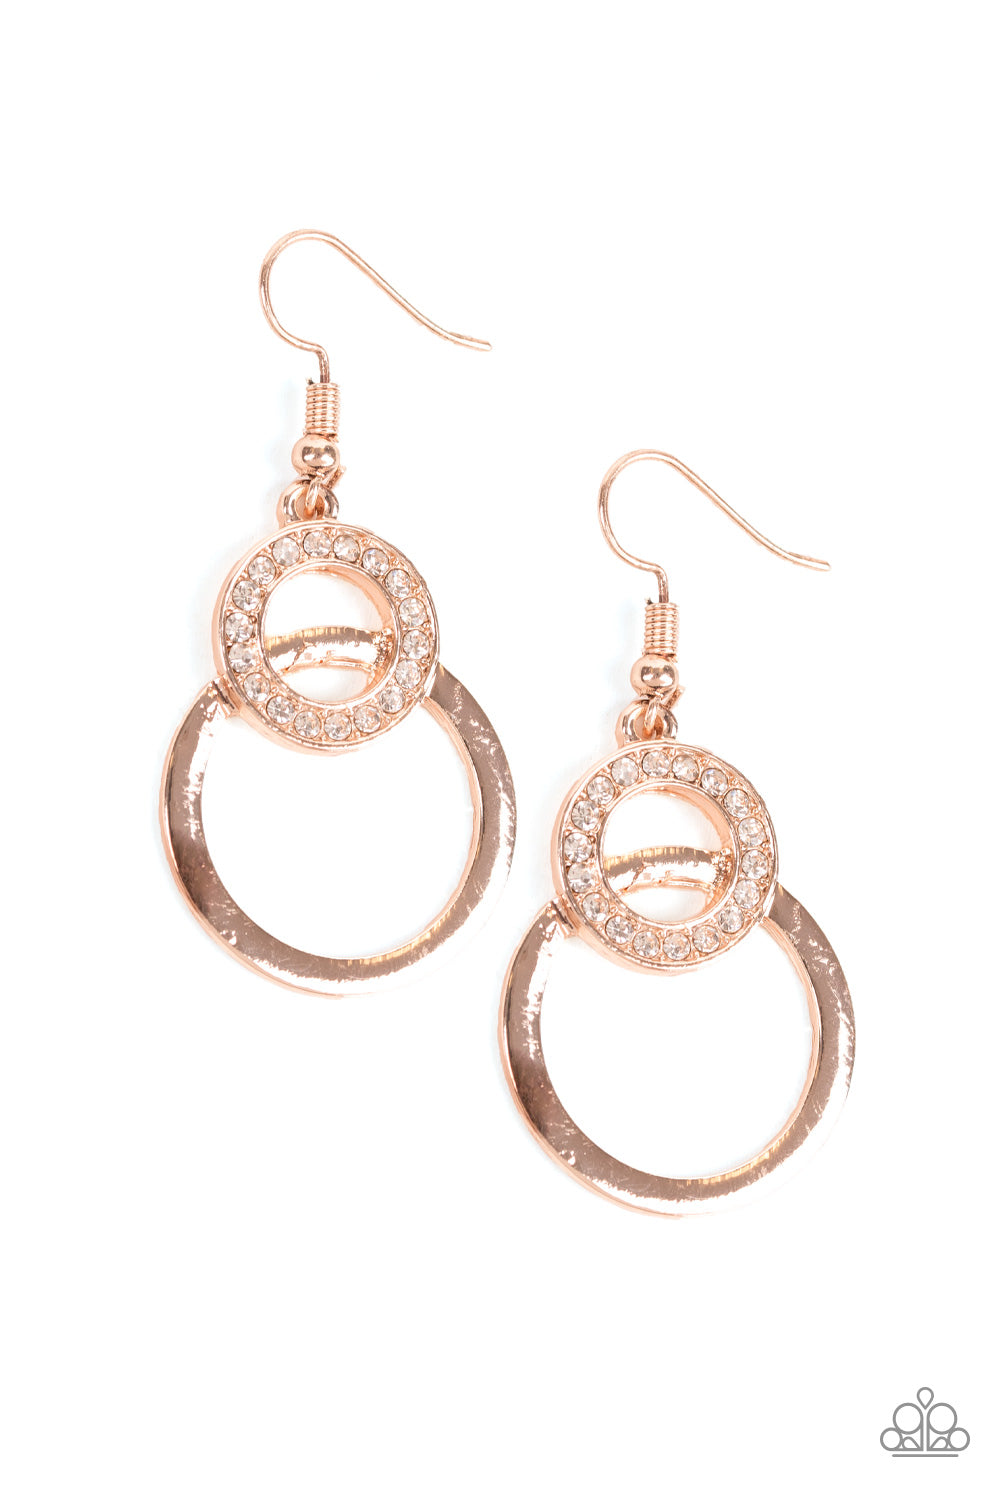 Paparazzi Accessories - Regal Refinery - Rose Gold Earrings - JMJ Jewelry Collection